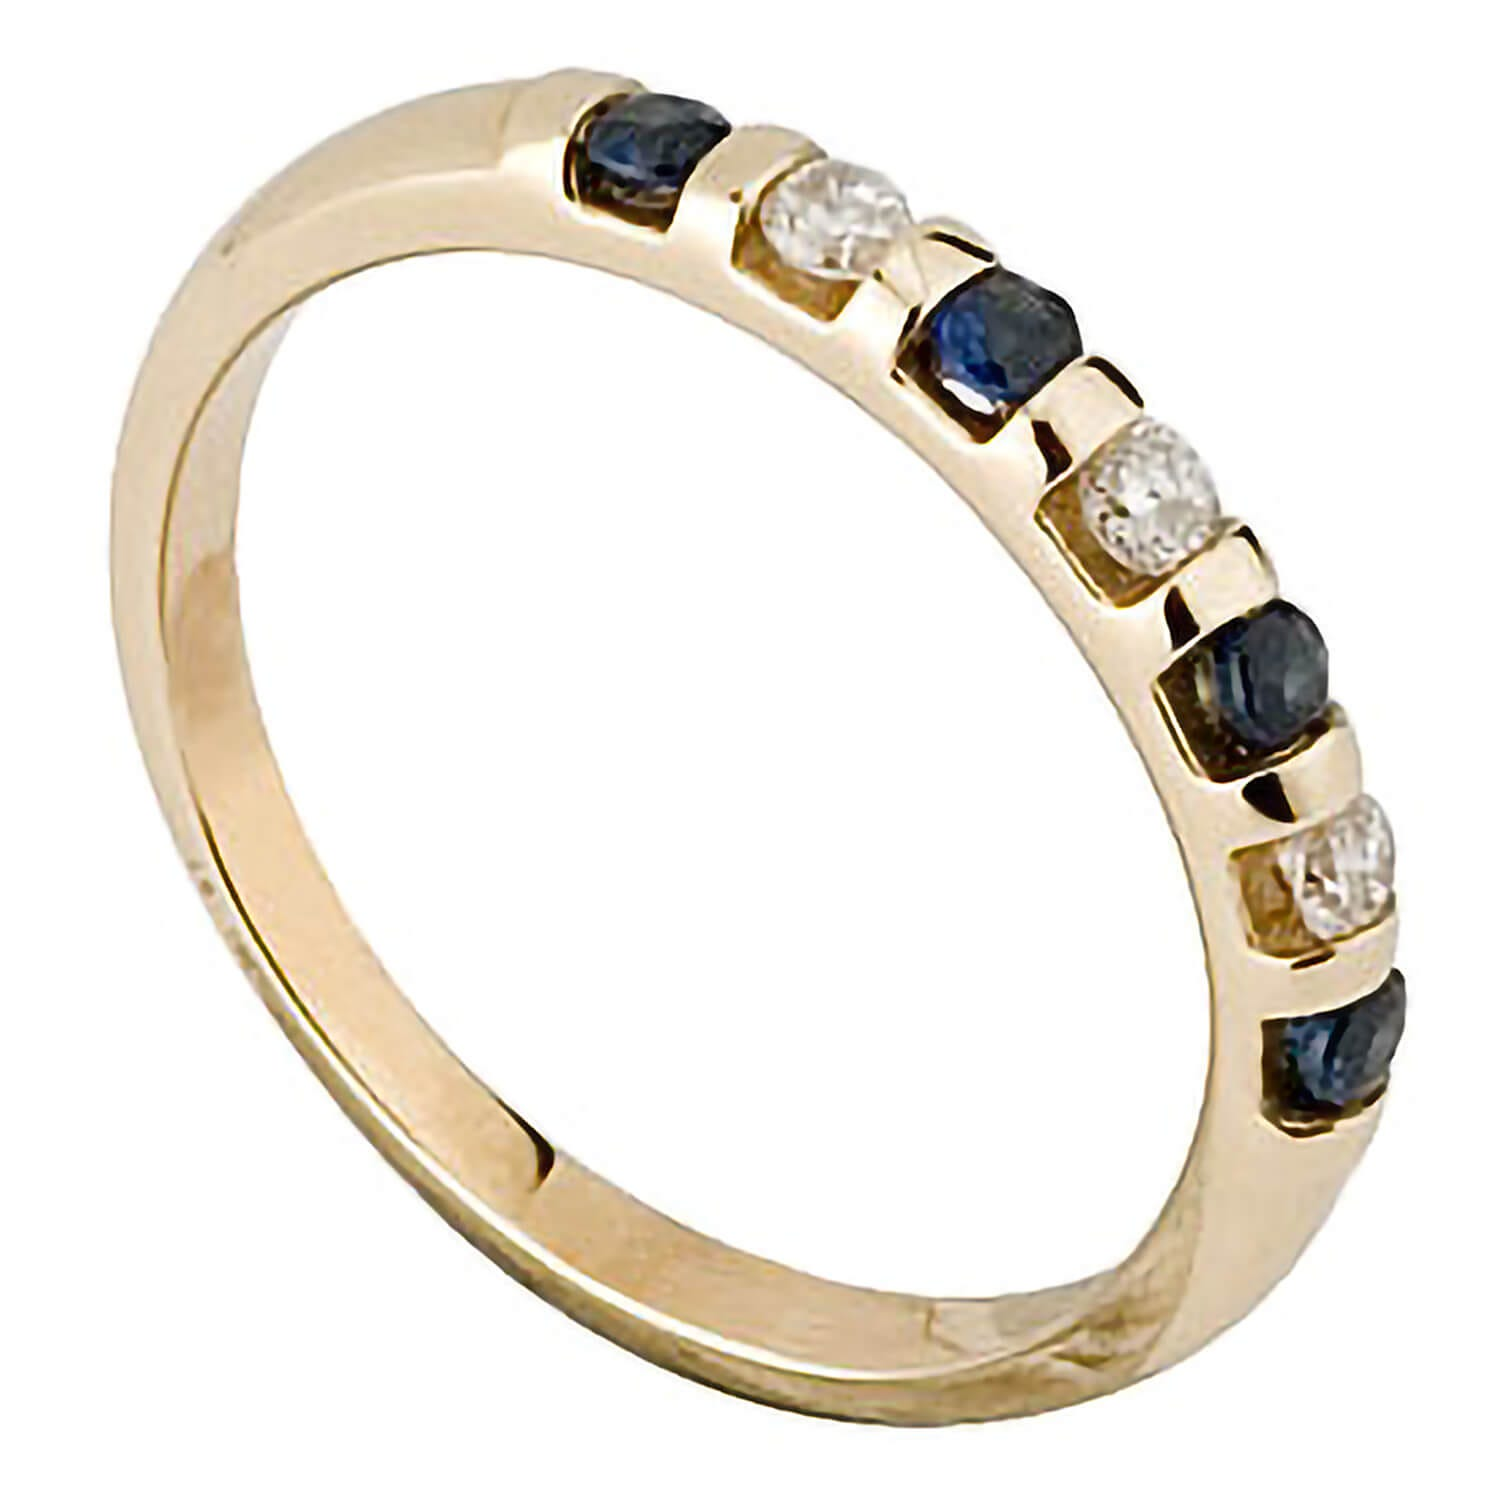 9ct gold sapphire and 0.12 carat diamond ring